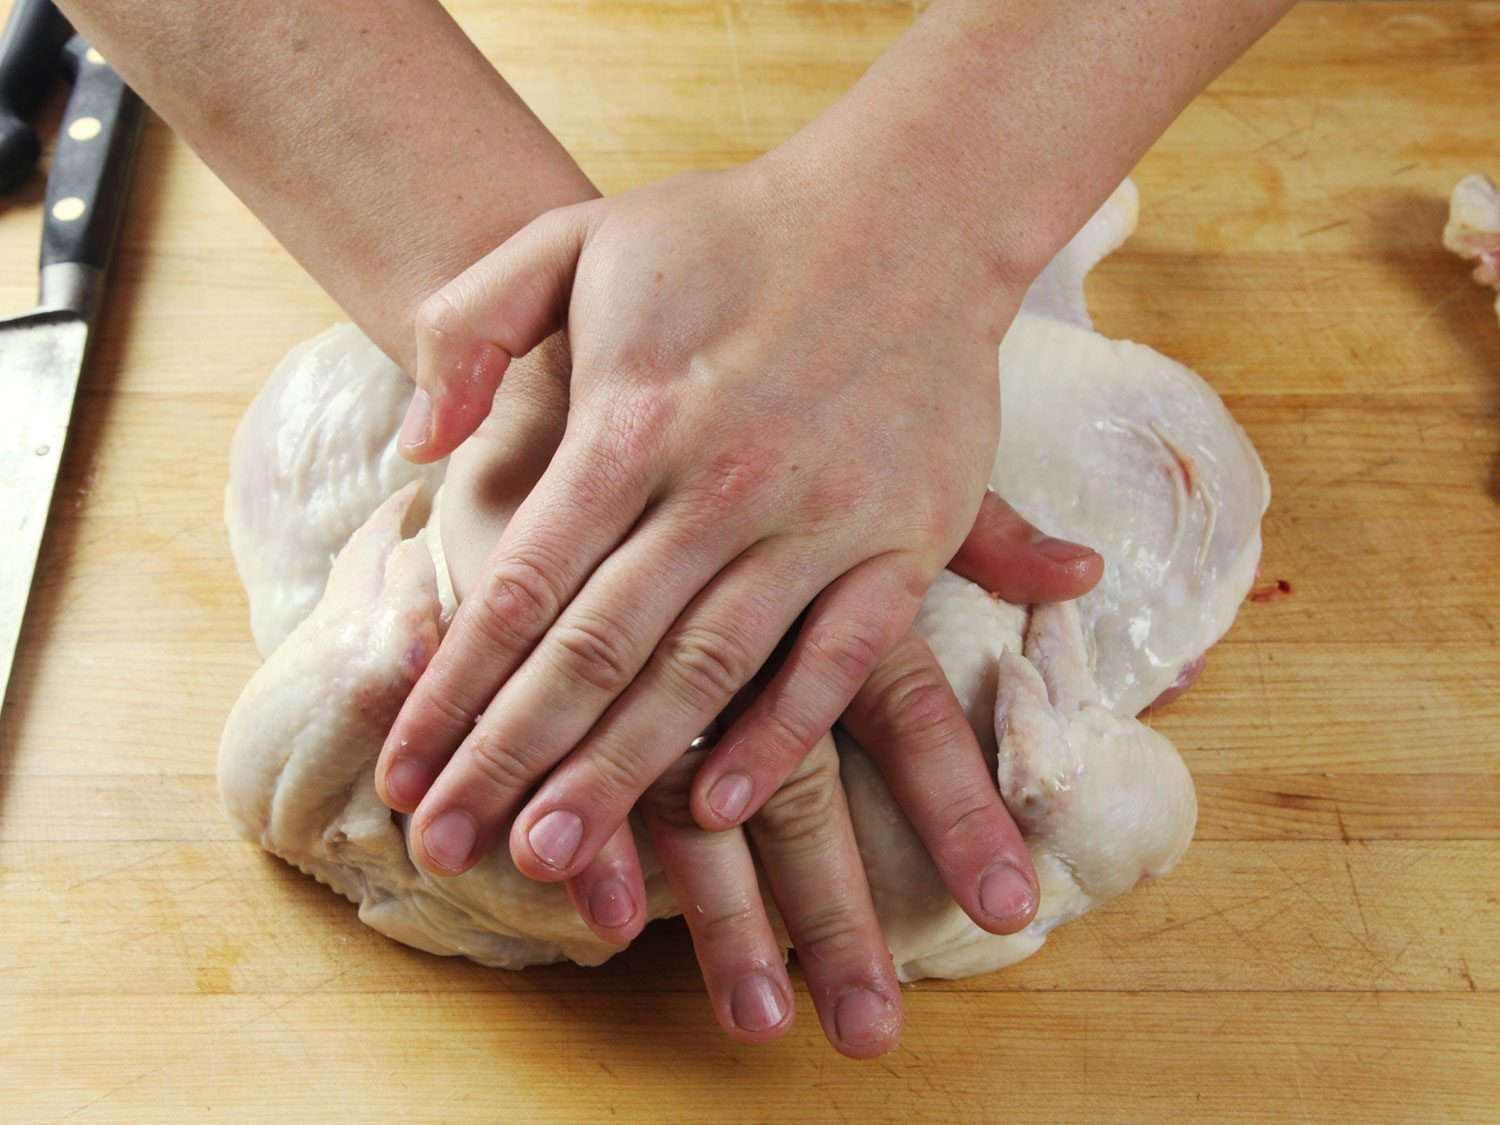 Using two hands to press down on the breastbone of a raw chicken to spatchcock it.